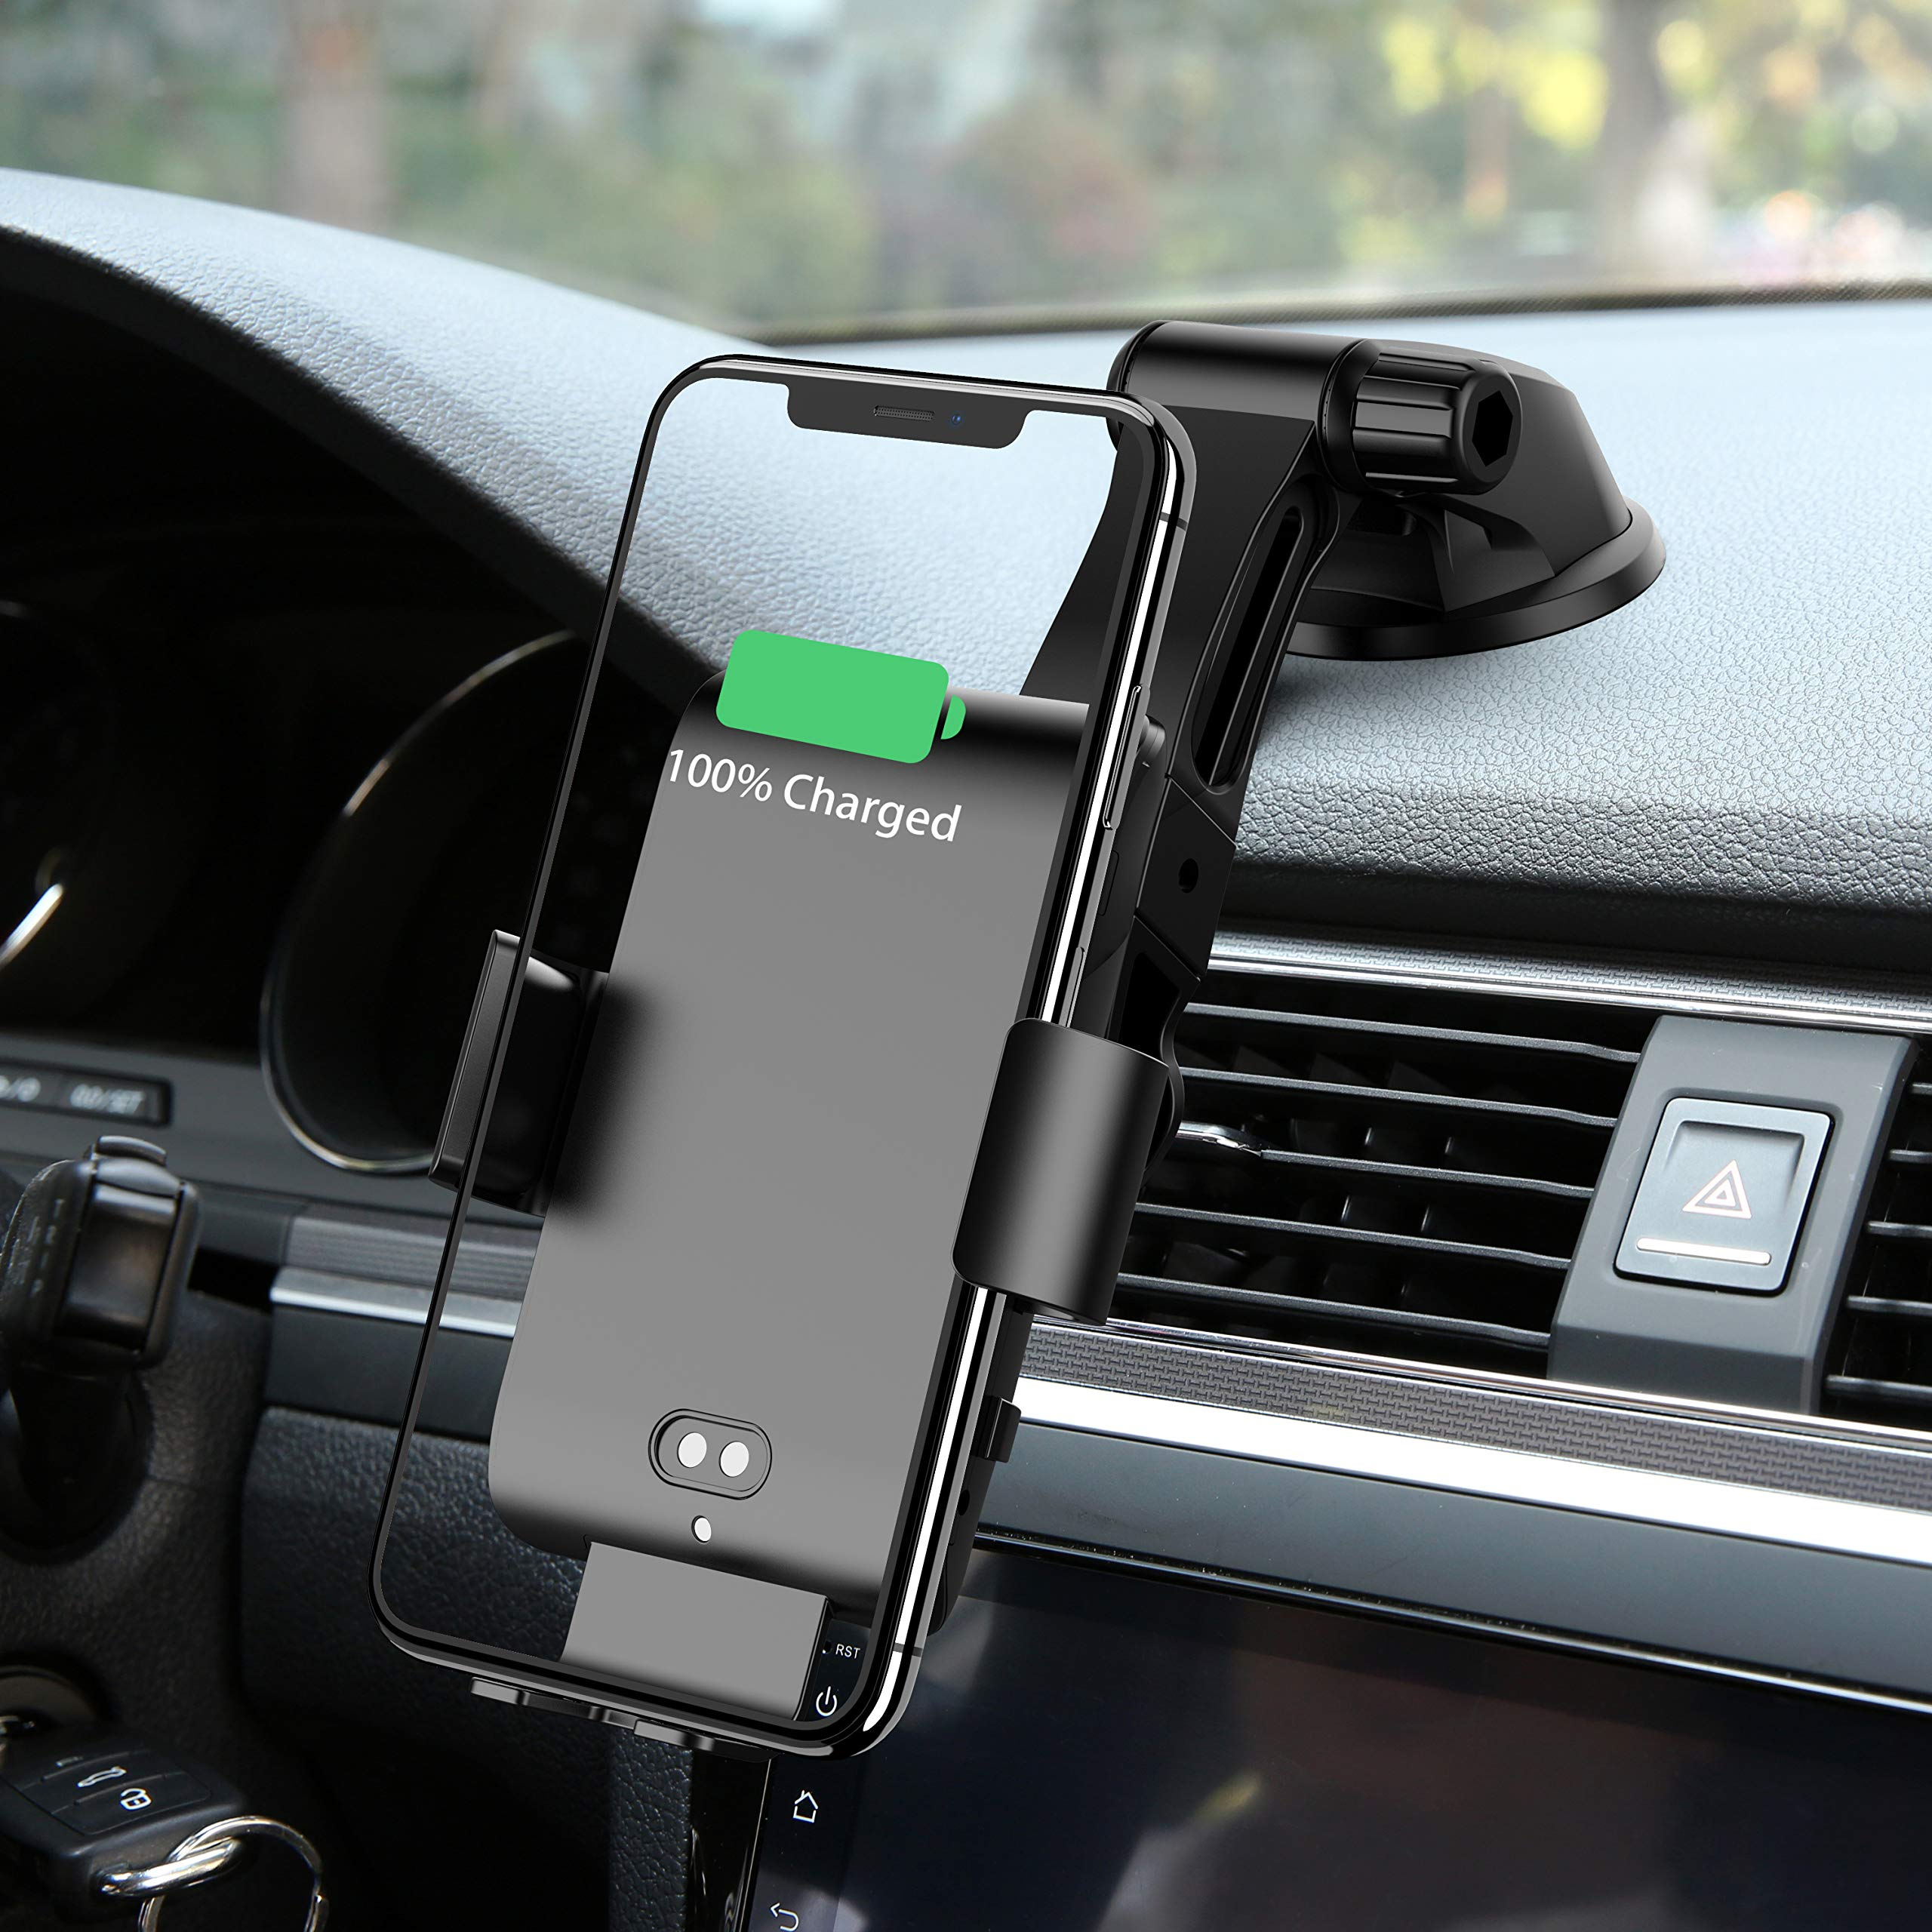 Wireless Car Charger Automatic Clamping MONOOY 10WQi Fast Charging Car Charger Mount Compatible with iPhone Xs MAX/XS/XR/X/8/8p, Samsung S10/S10+/S9/S9+/S8/S8+ by MONOOY